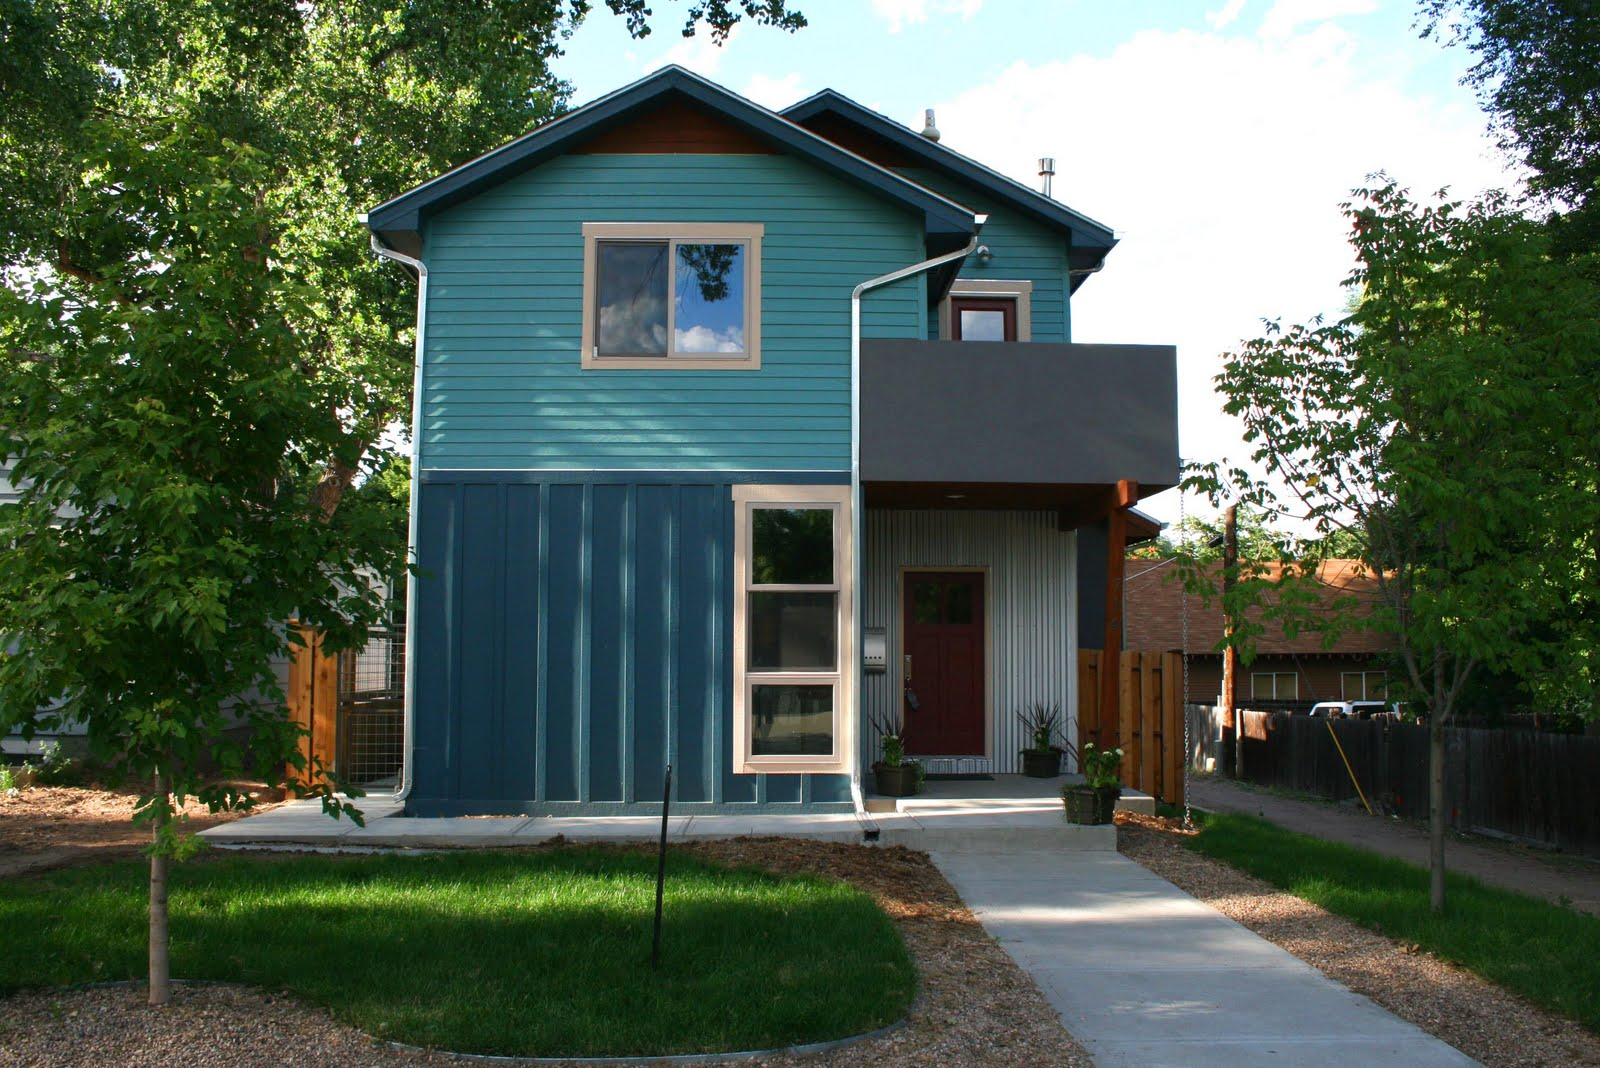 Crip S Cribs 714 Maple St Fort Collins 549 900